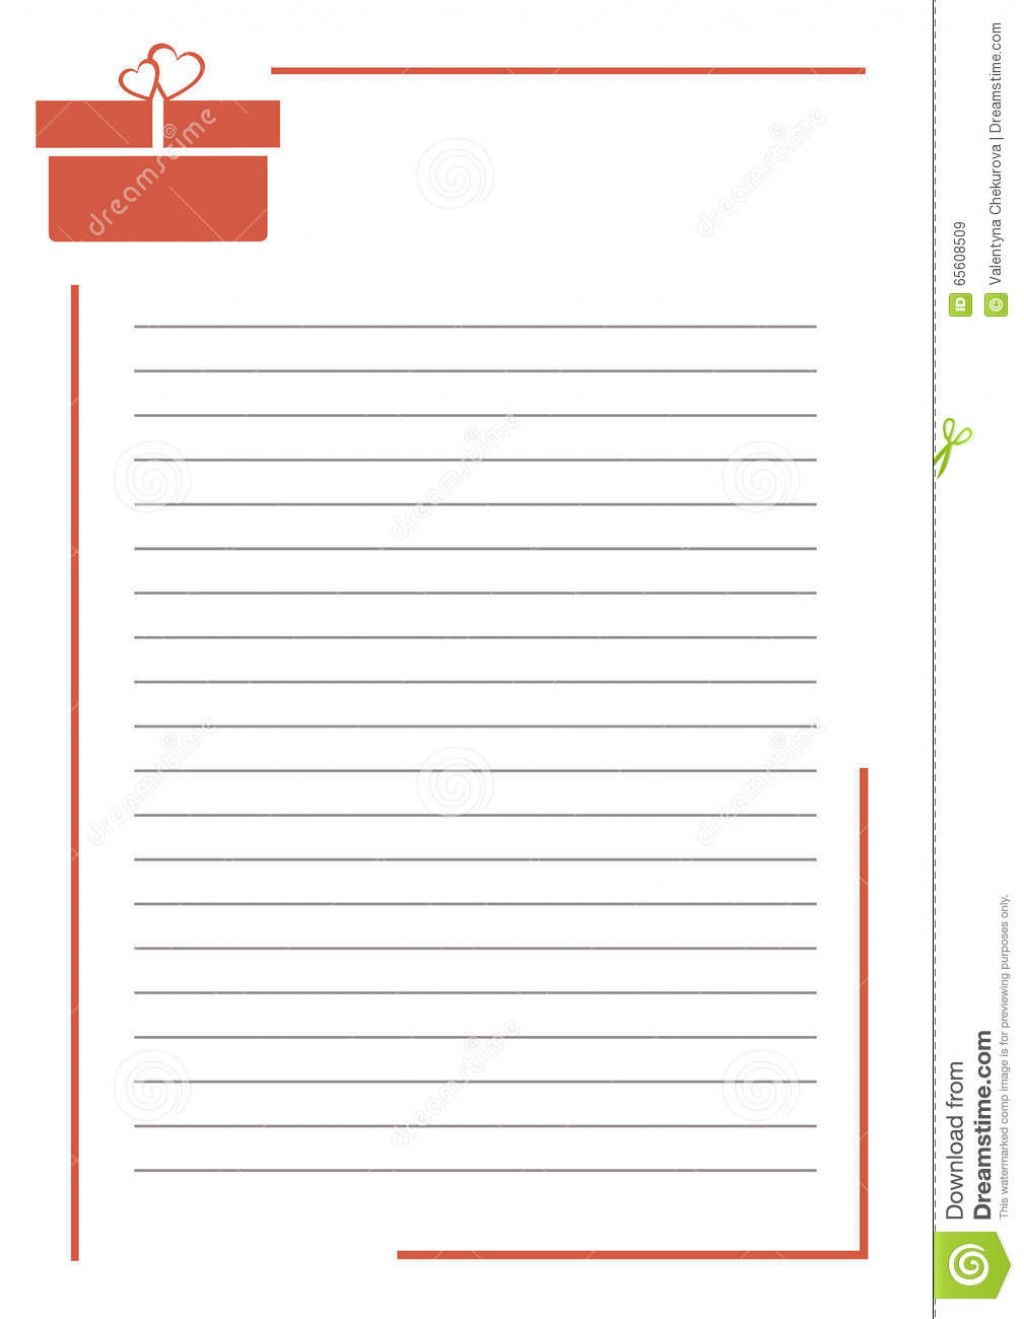 005 Note Cards For Research Paper Vector Blank Letter Greeting Card White Form Red Gift Box Lines Border Format Size Rare Taking Papers System Example Of Notecards Large